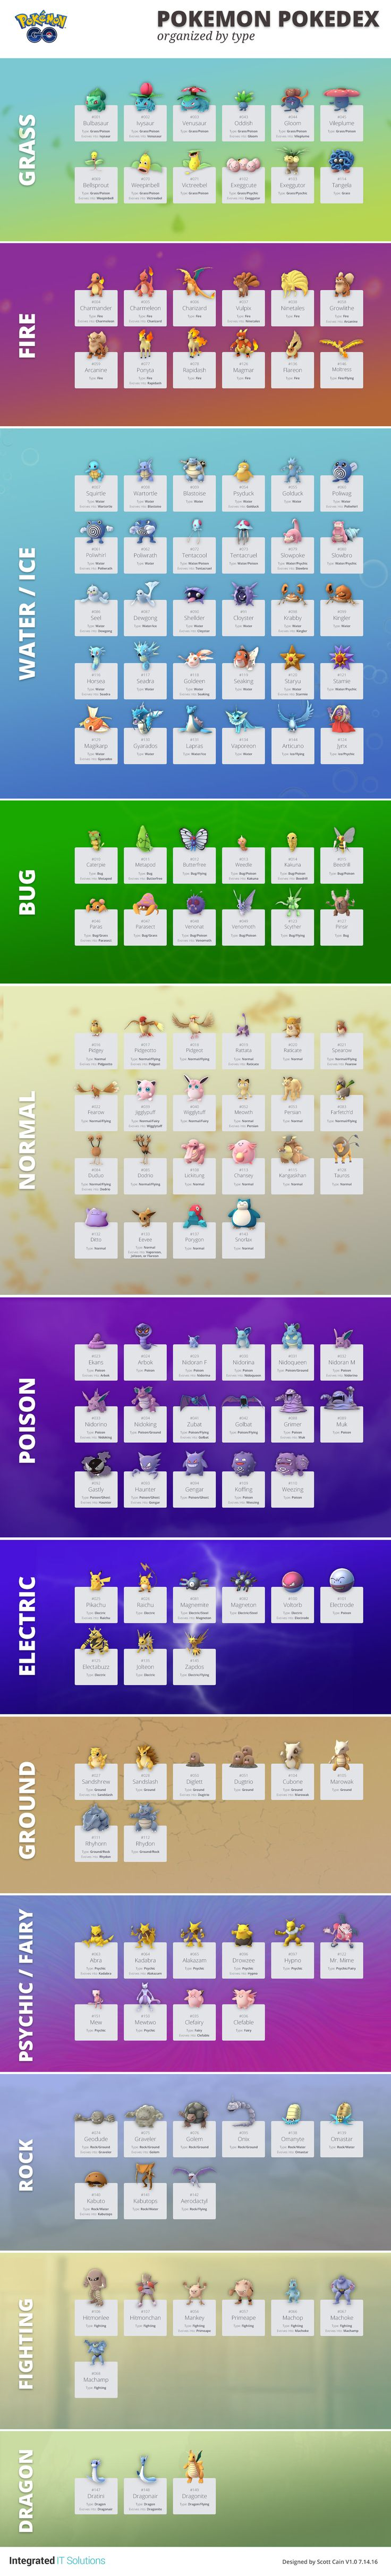 10+ Essential Pokemon Go Tips, Charts and Infographics for the Trainers